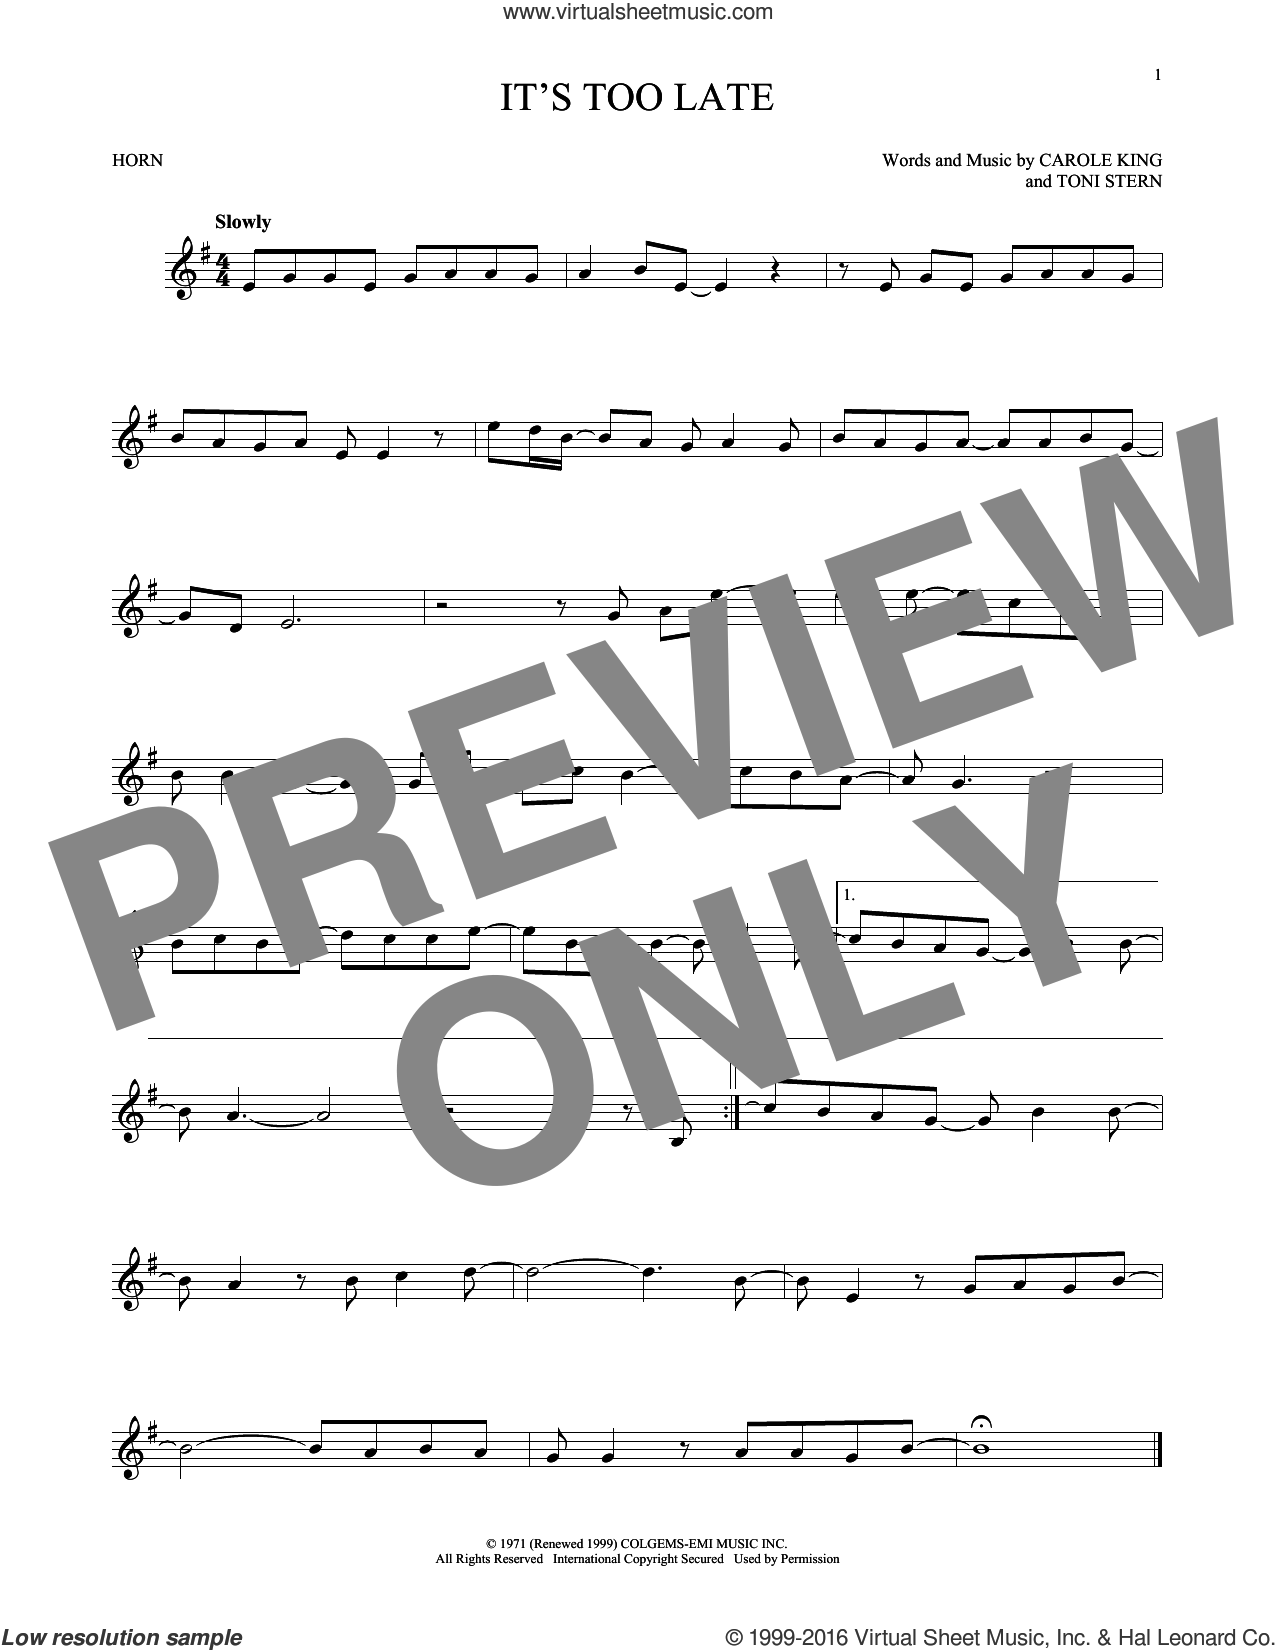 It's Too Late sheet music for horn solo by Carole King, Gloria Estefan and Toni Stern, intermediate skill level